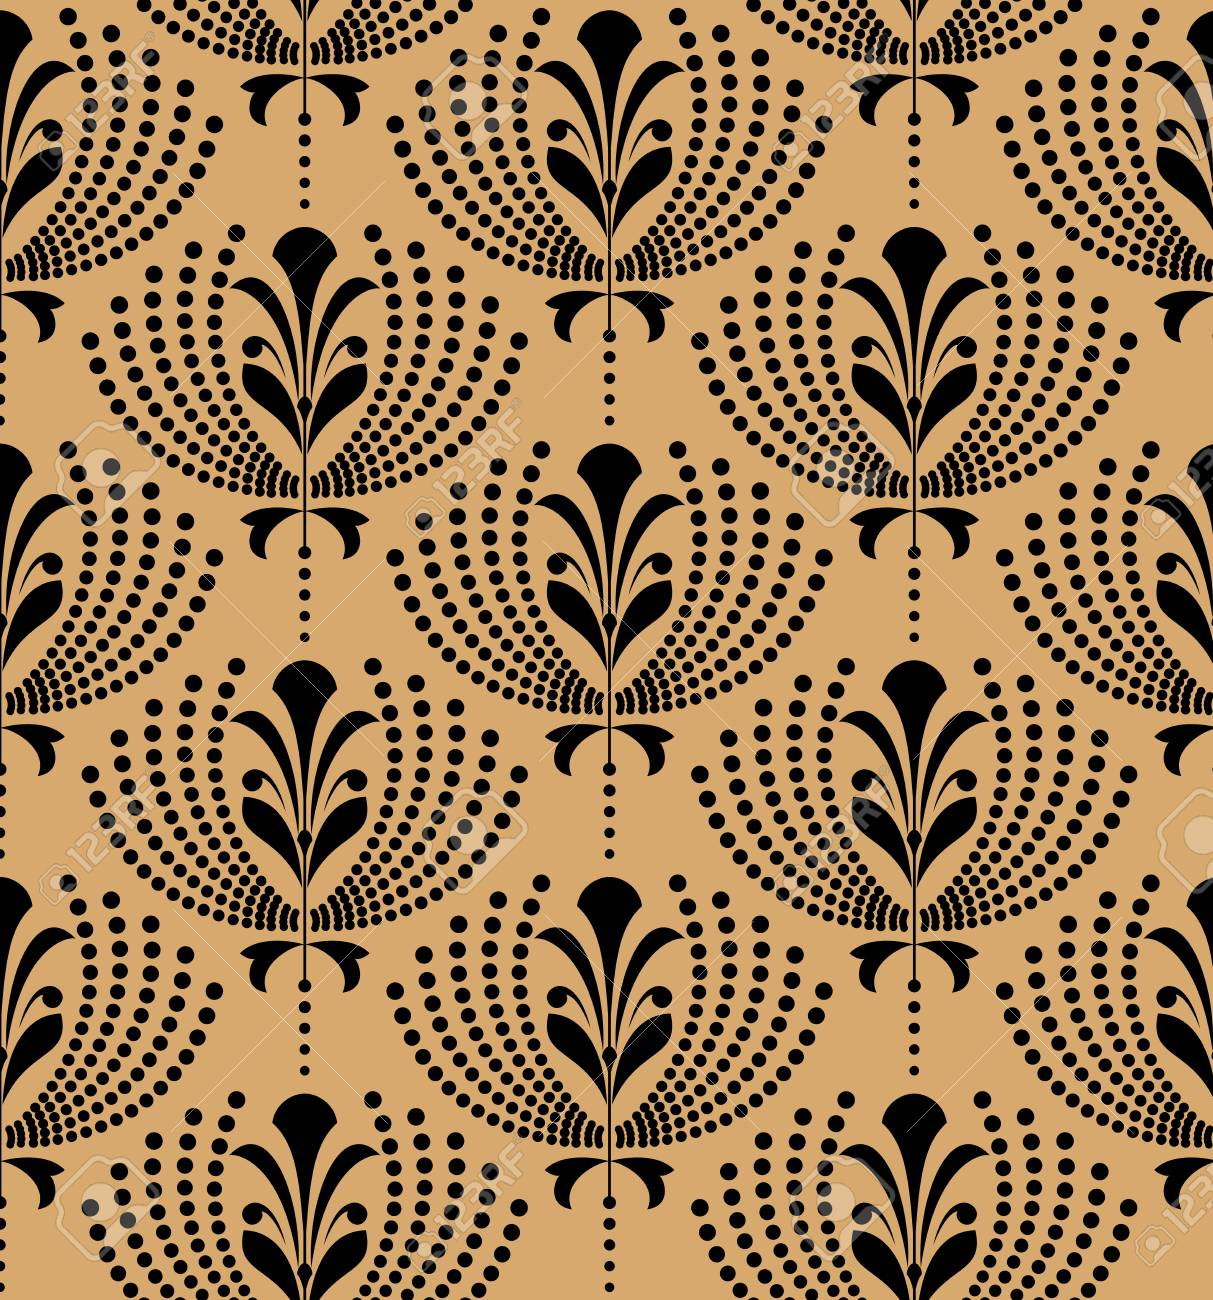 Flower pattern. Seamless black and gold ornament. Graphic vector background. Ornament for fabric, wallpaper, packaging - 111995636